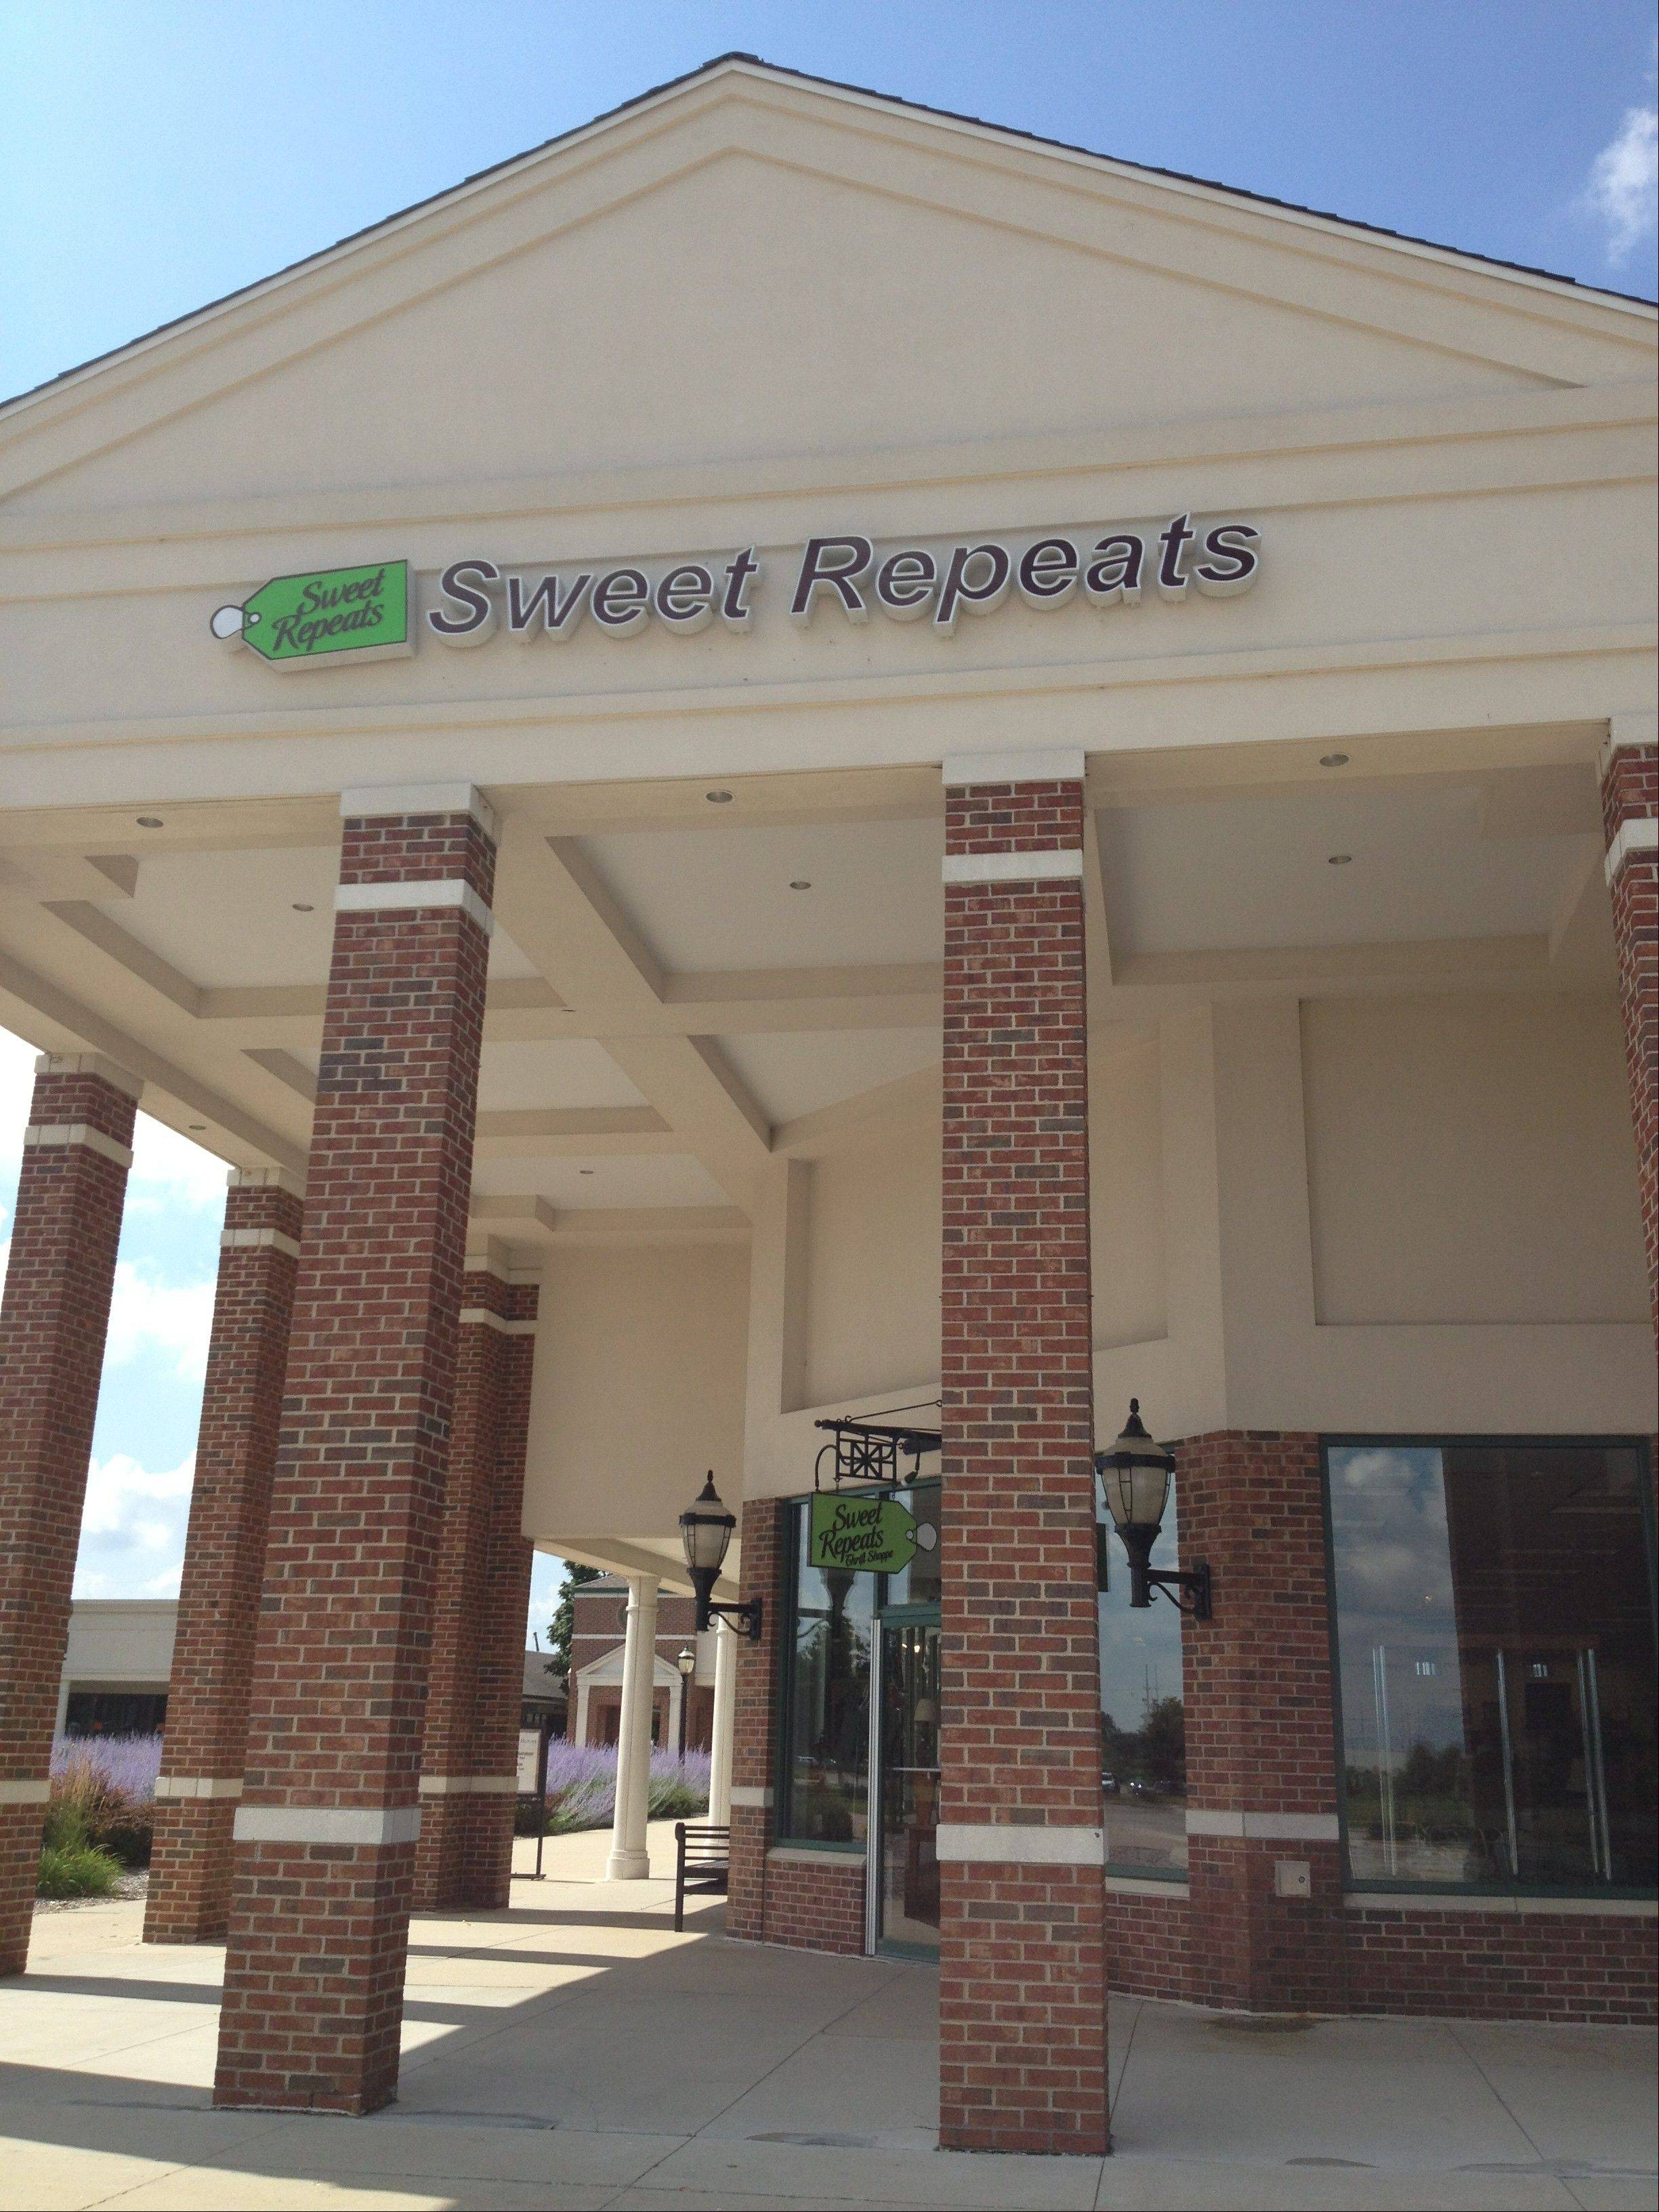 Sweet Repeats Thrift Shoppe, which raises money for the Pioneer Center for Human Services, has moved to the Huntley Outlet Center. Its shop is near the Gap Outlet store.